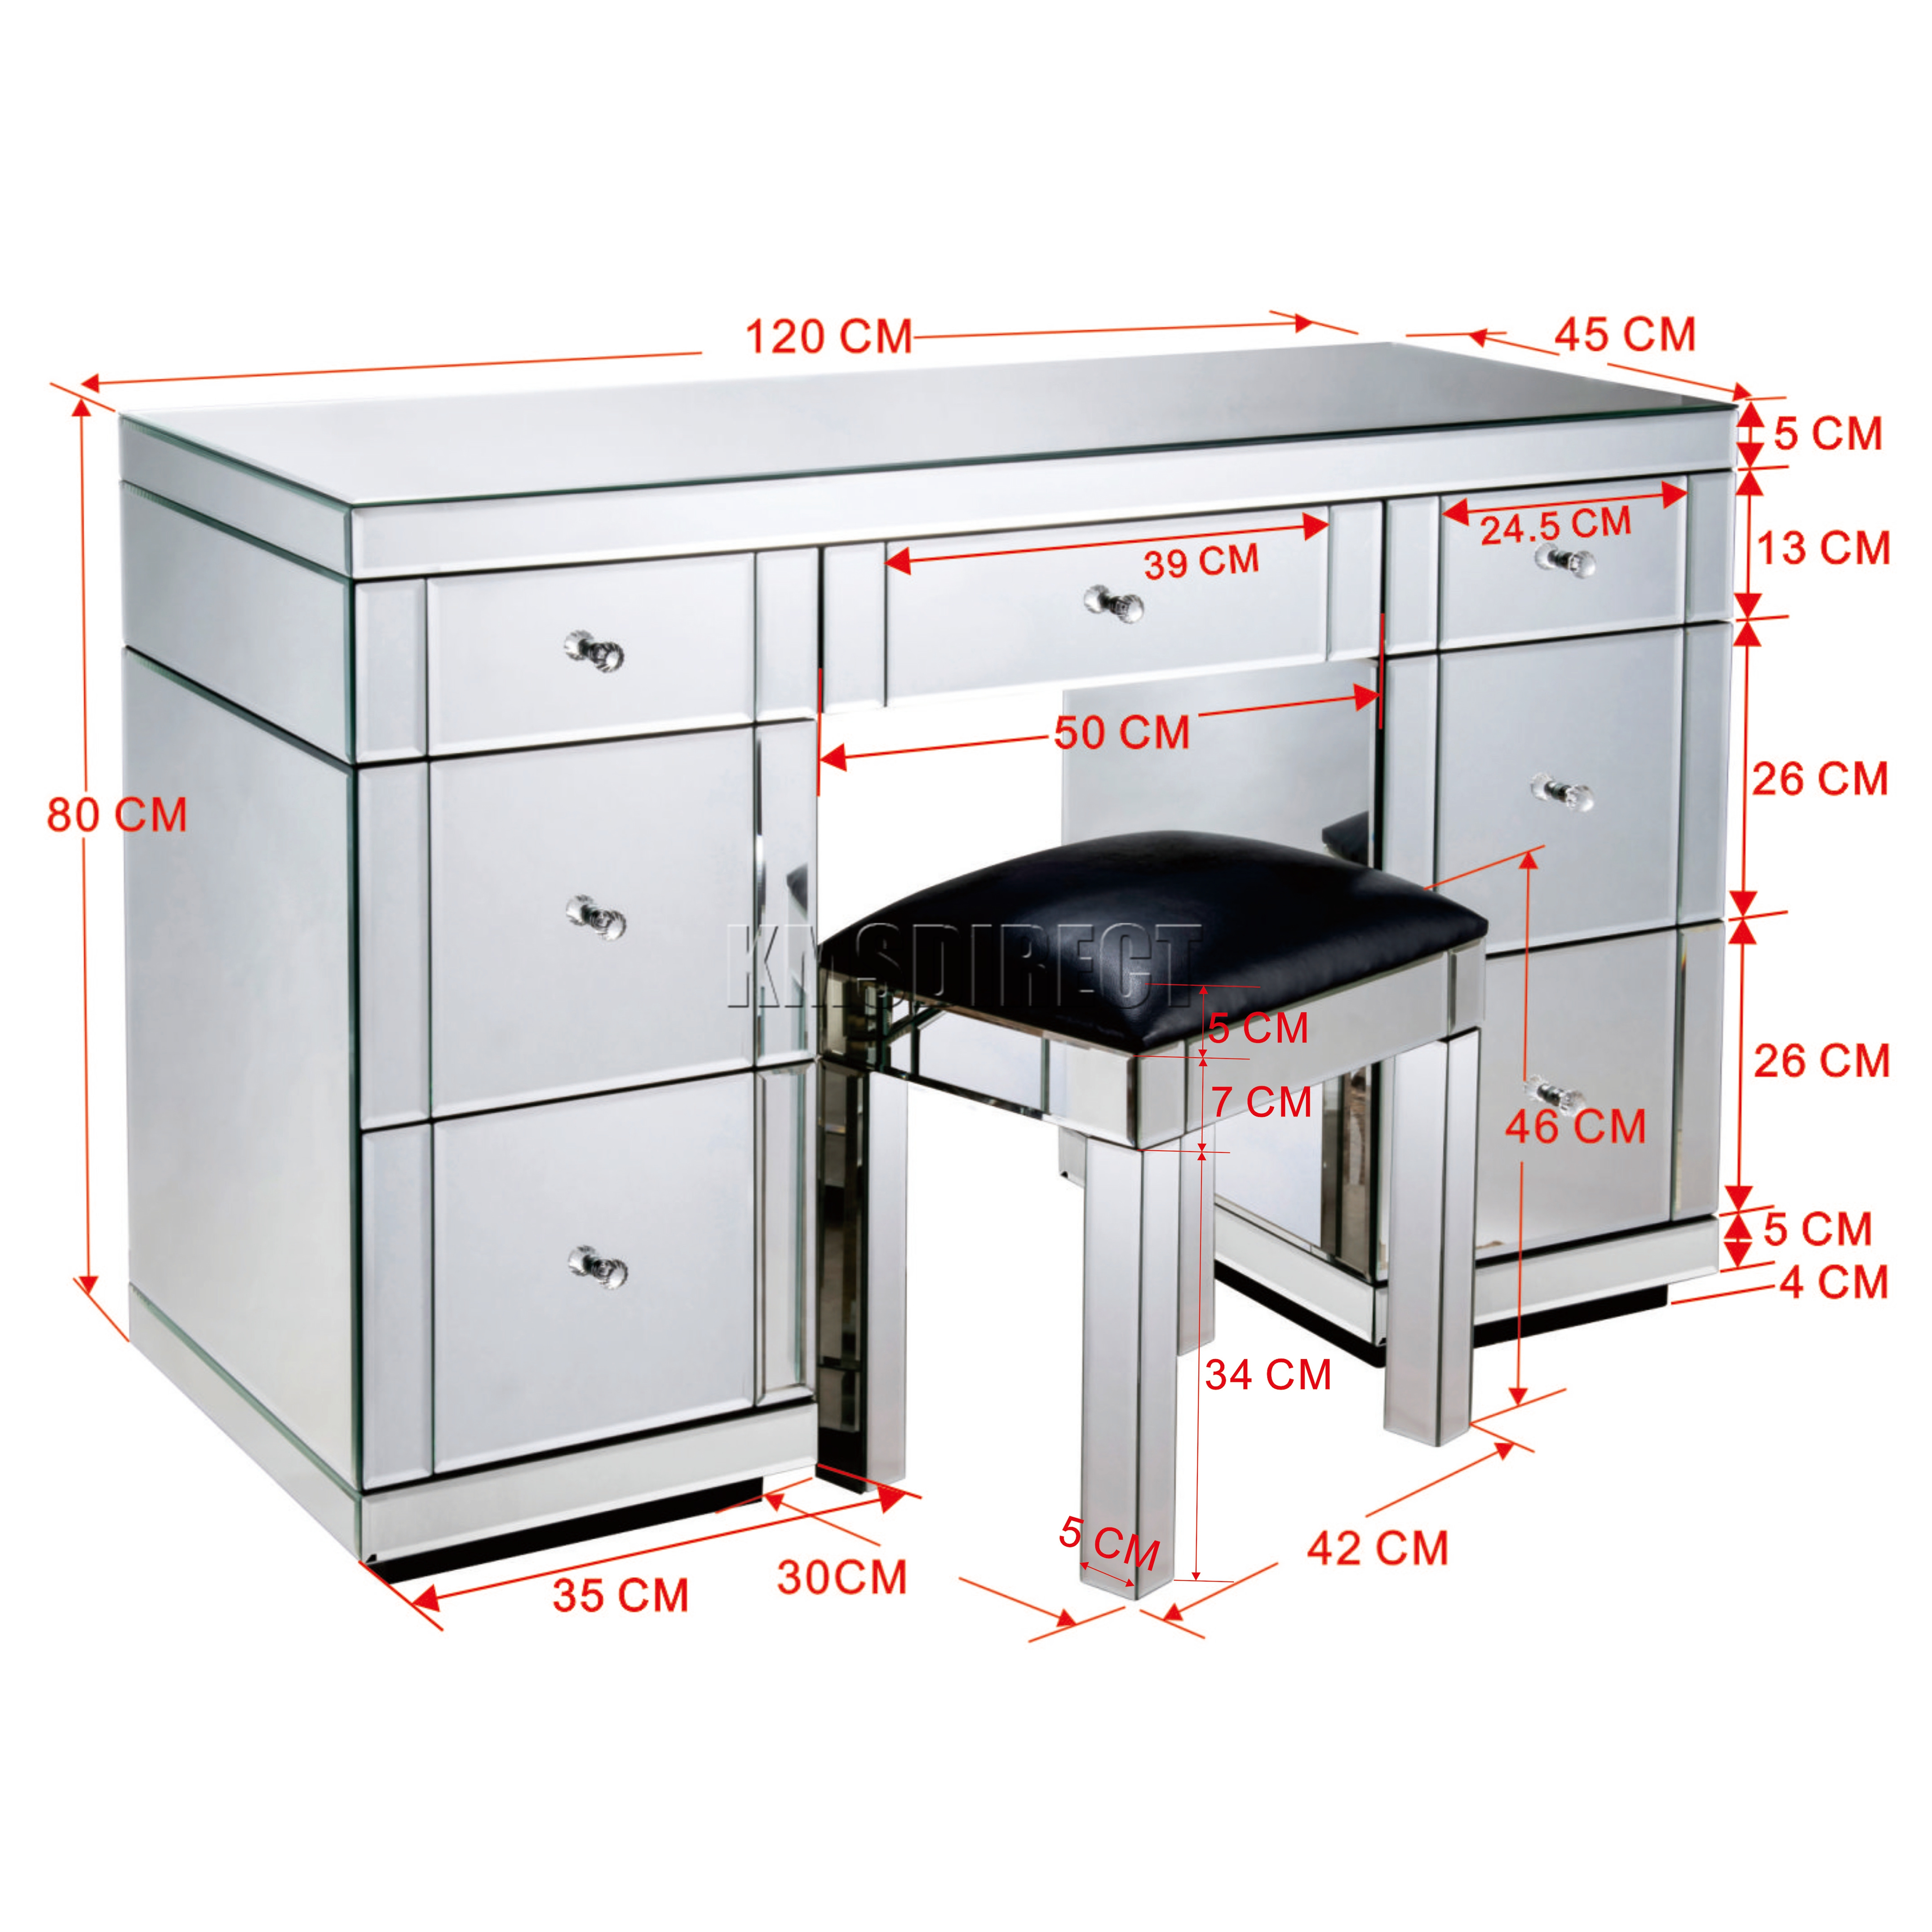 Genial WestWood Mirrored Furniture Glass Dressing Table With Drawer